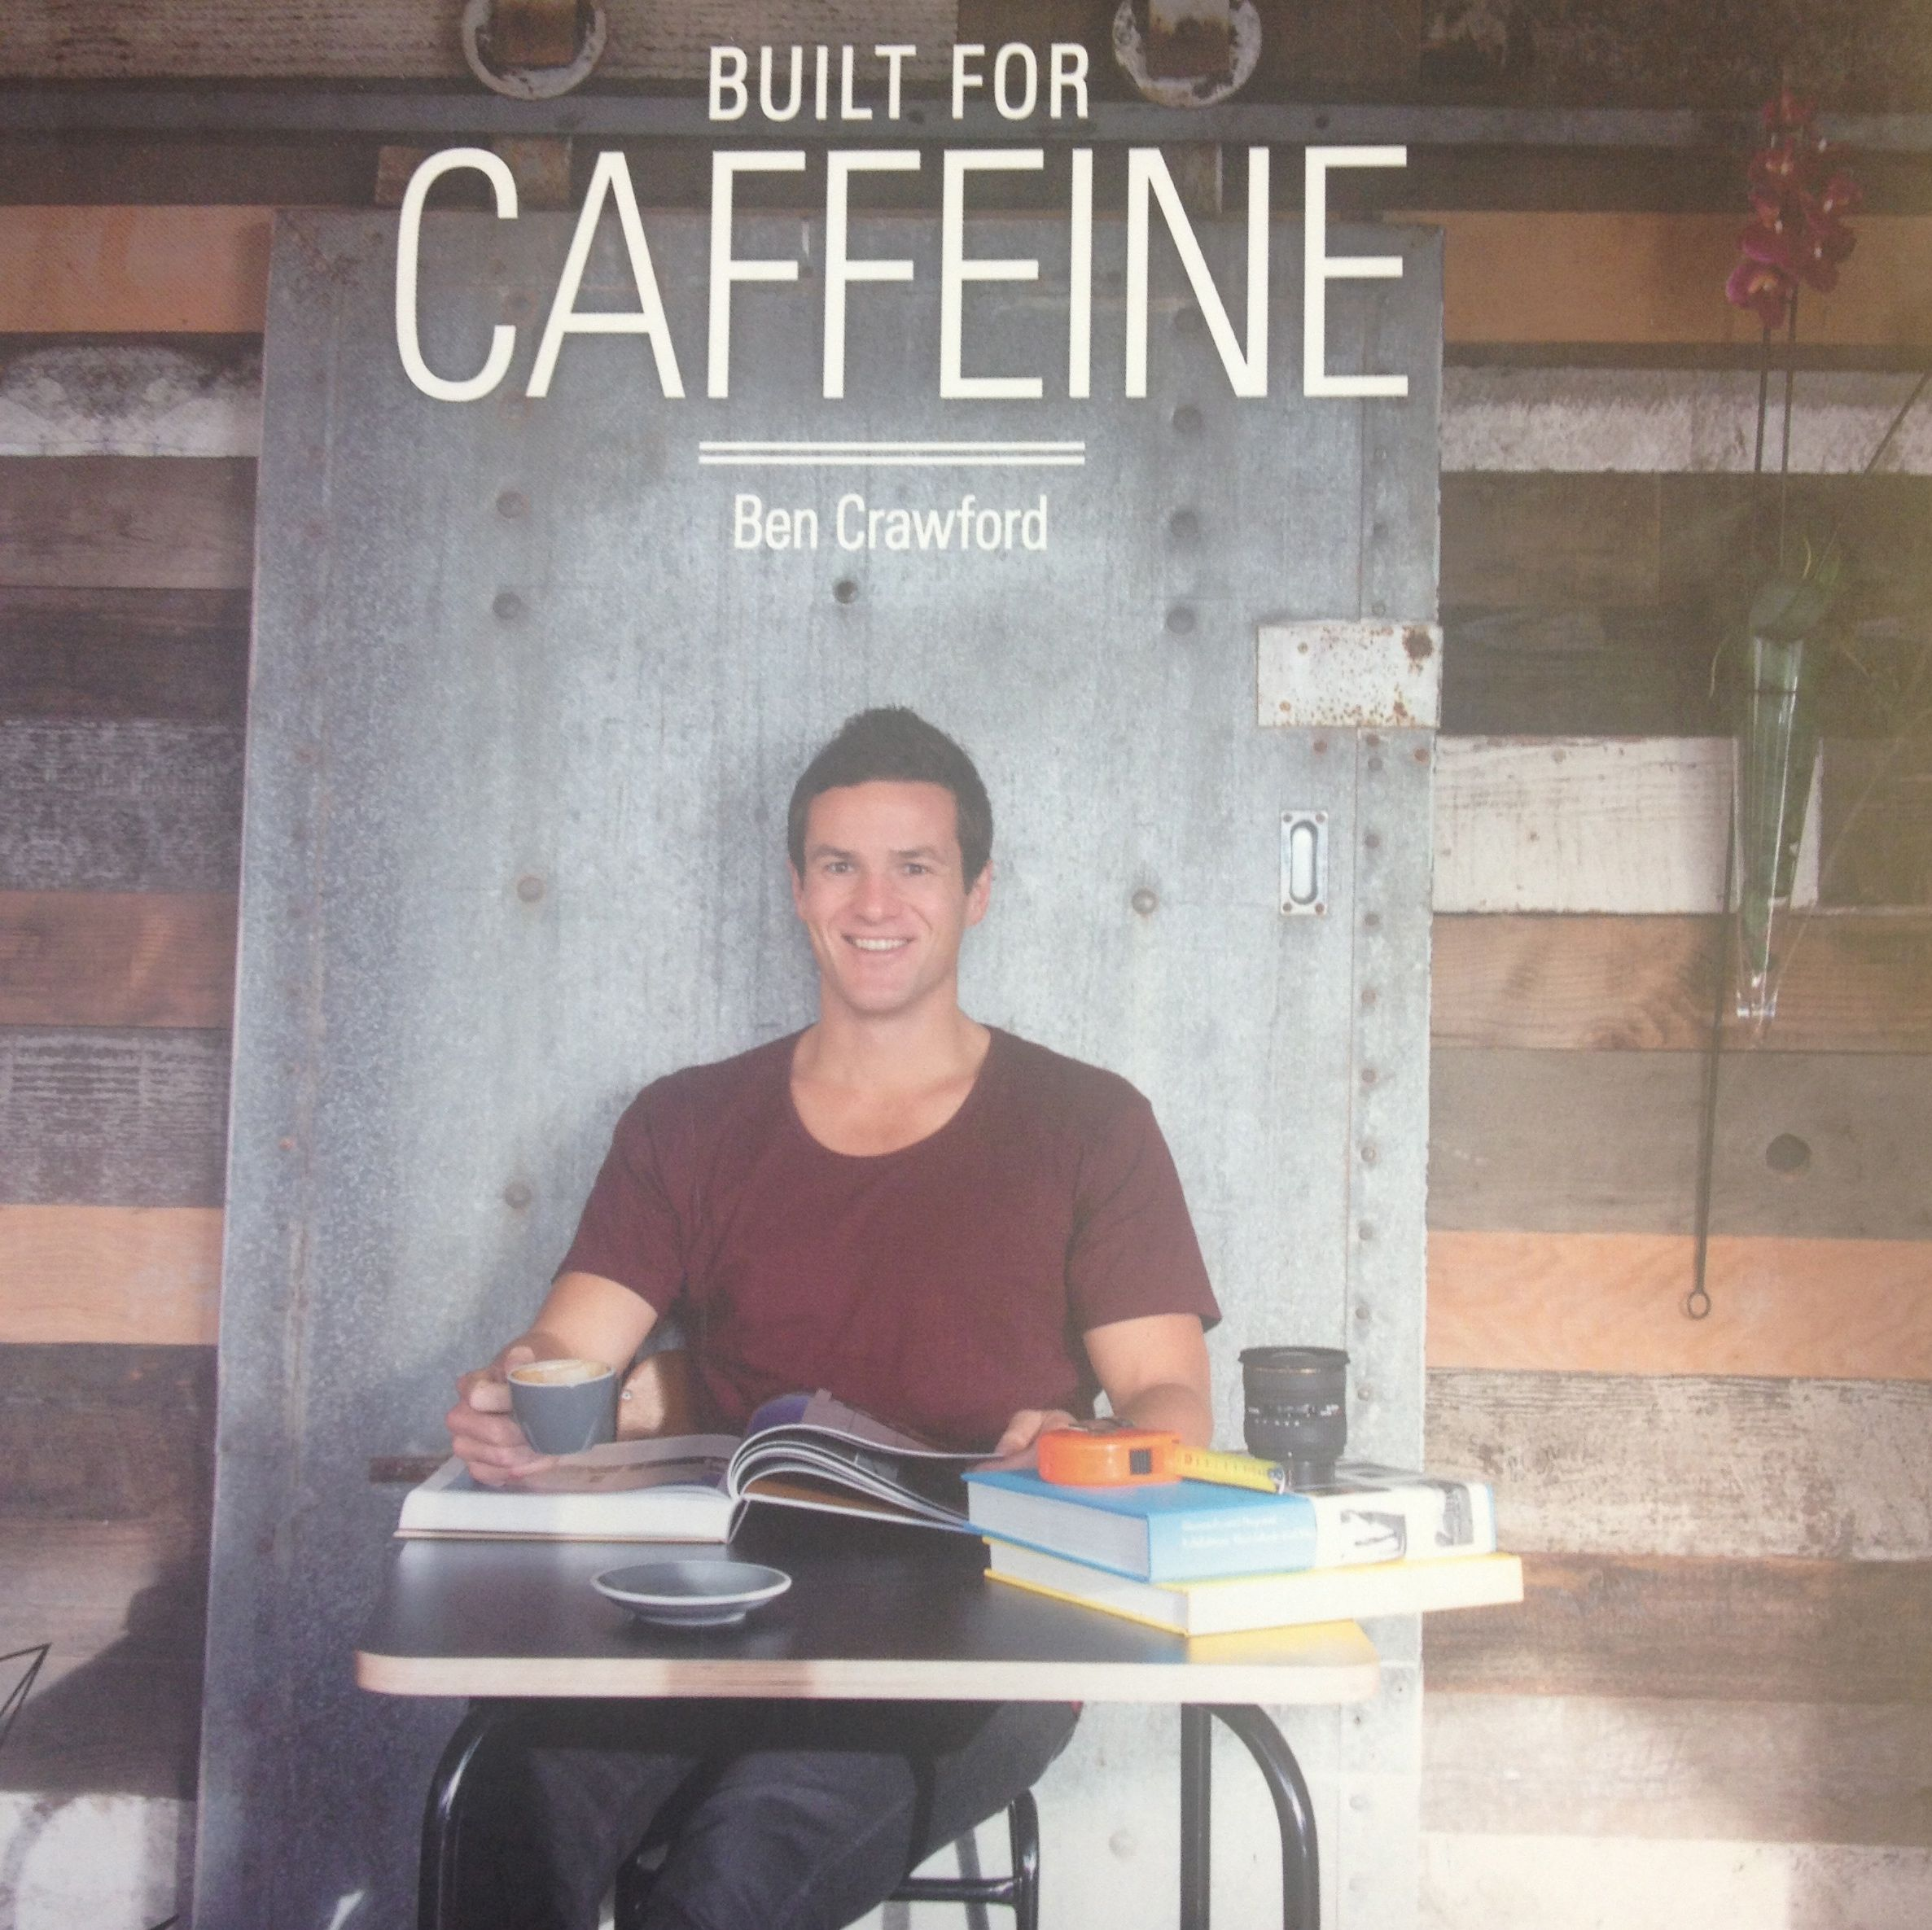 I should have taken a picture of the Re:Start mall, but instead I snapped a pic of the cover of this book about coffeehouses in New Zealand.